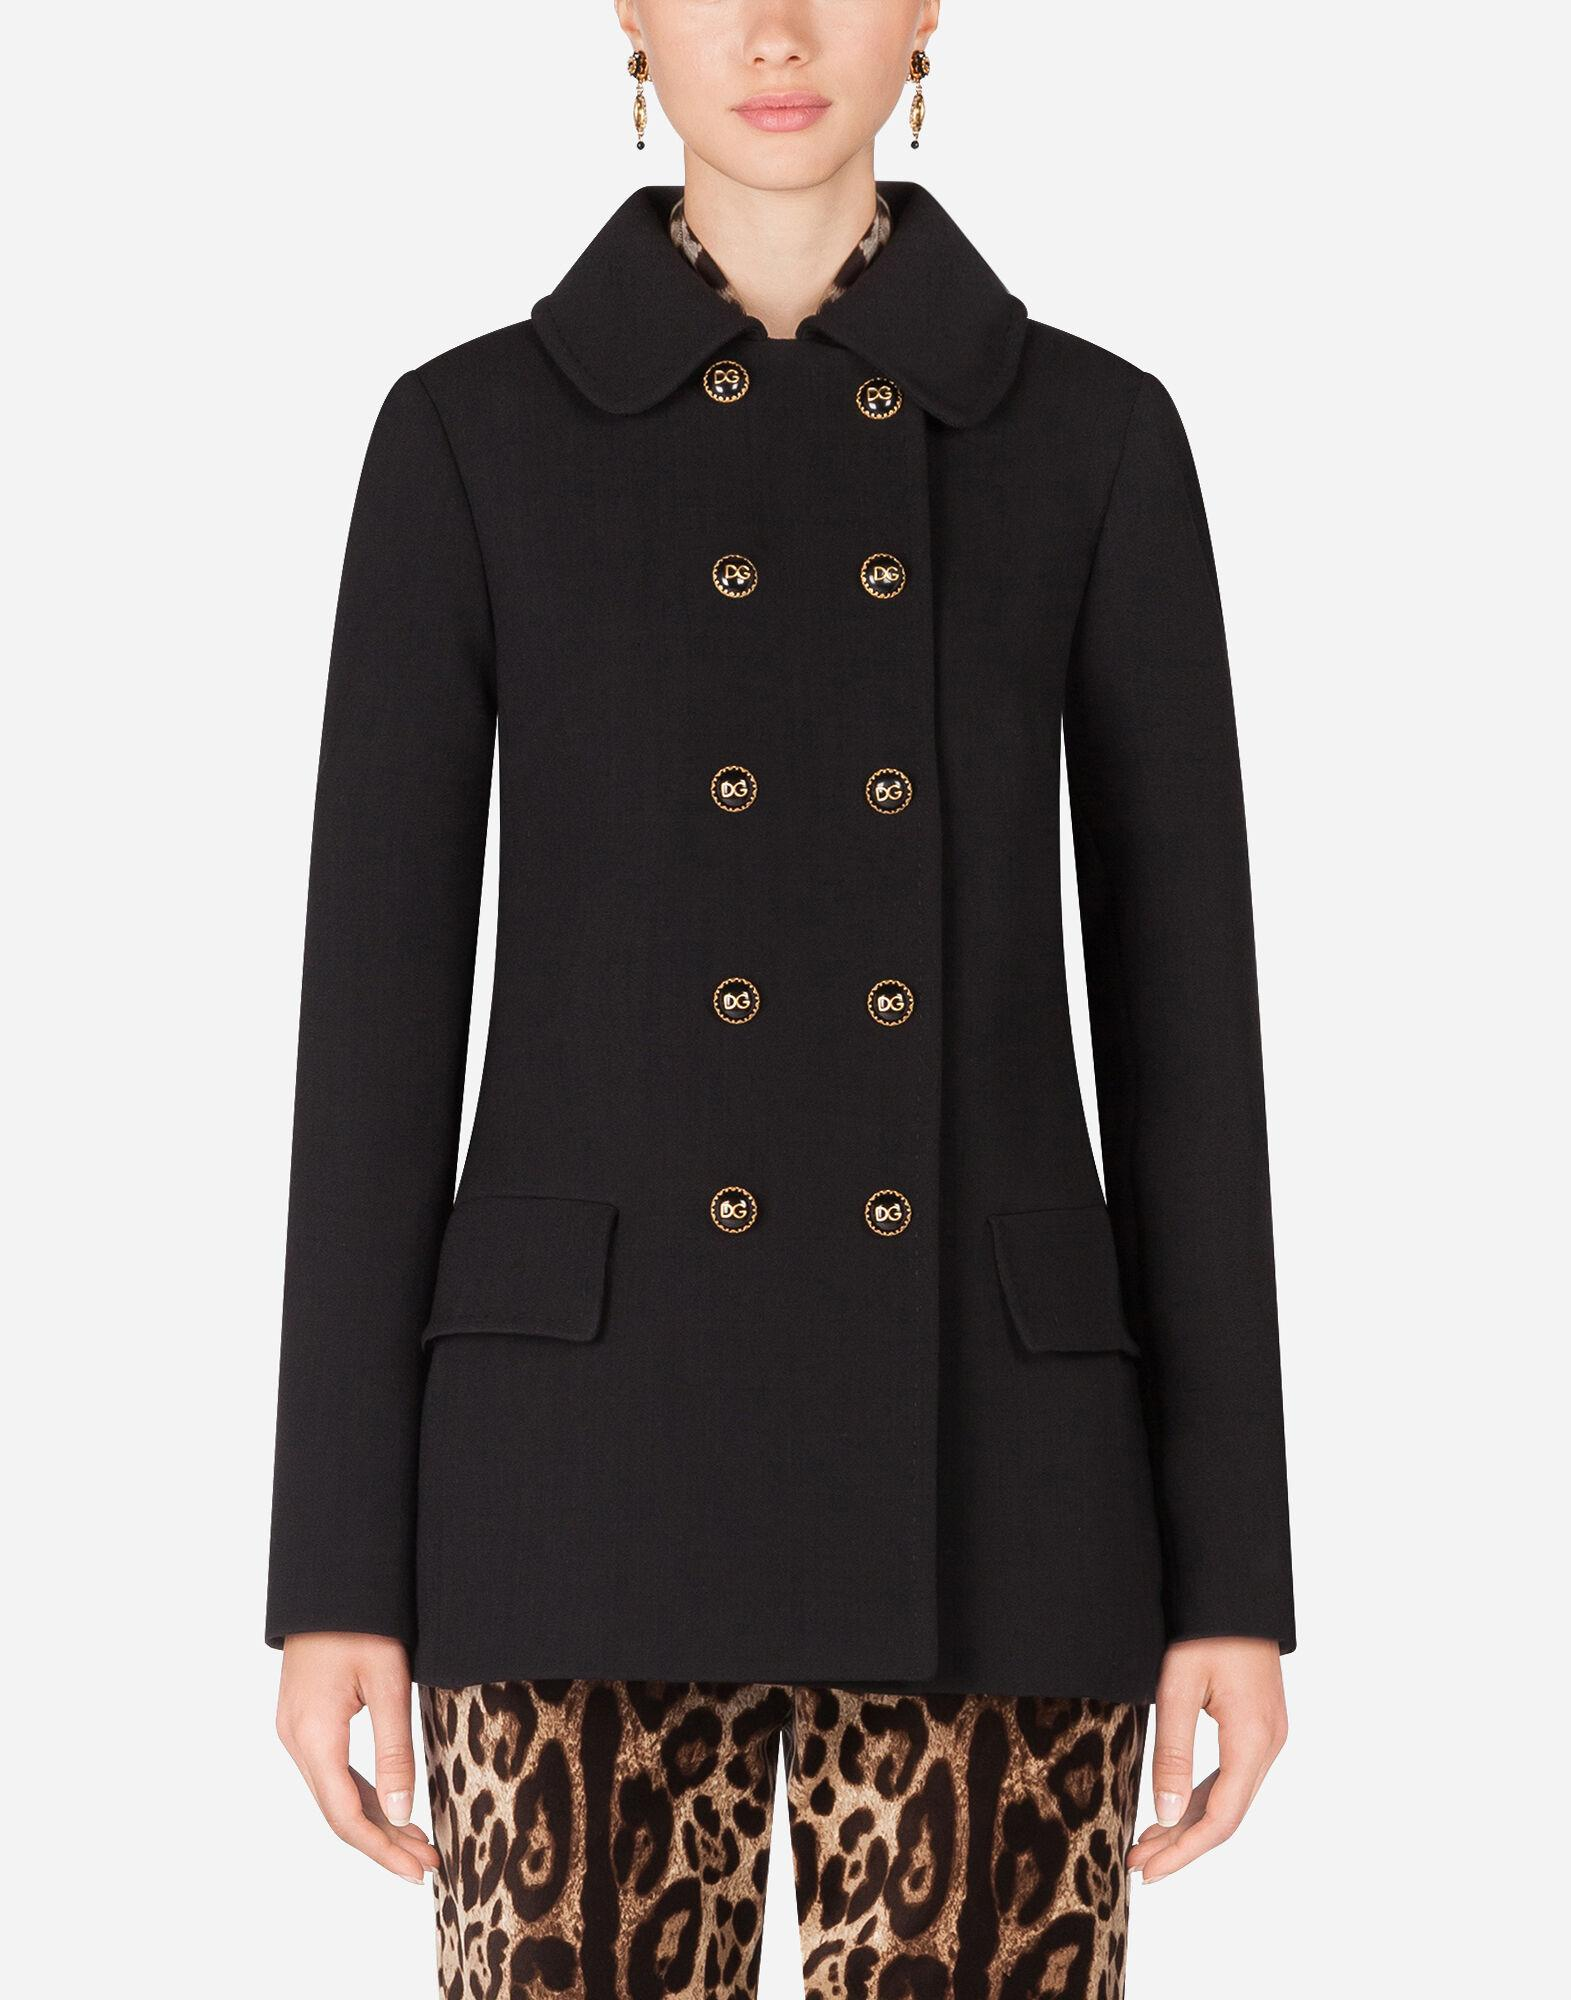 Basketweave pea coat with decorative buttons